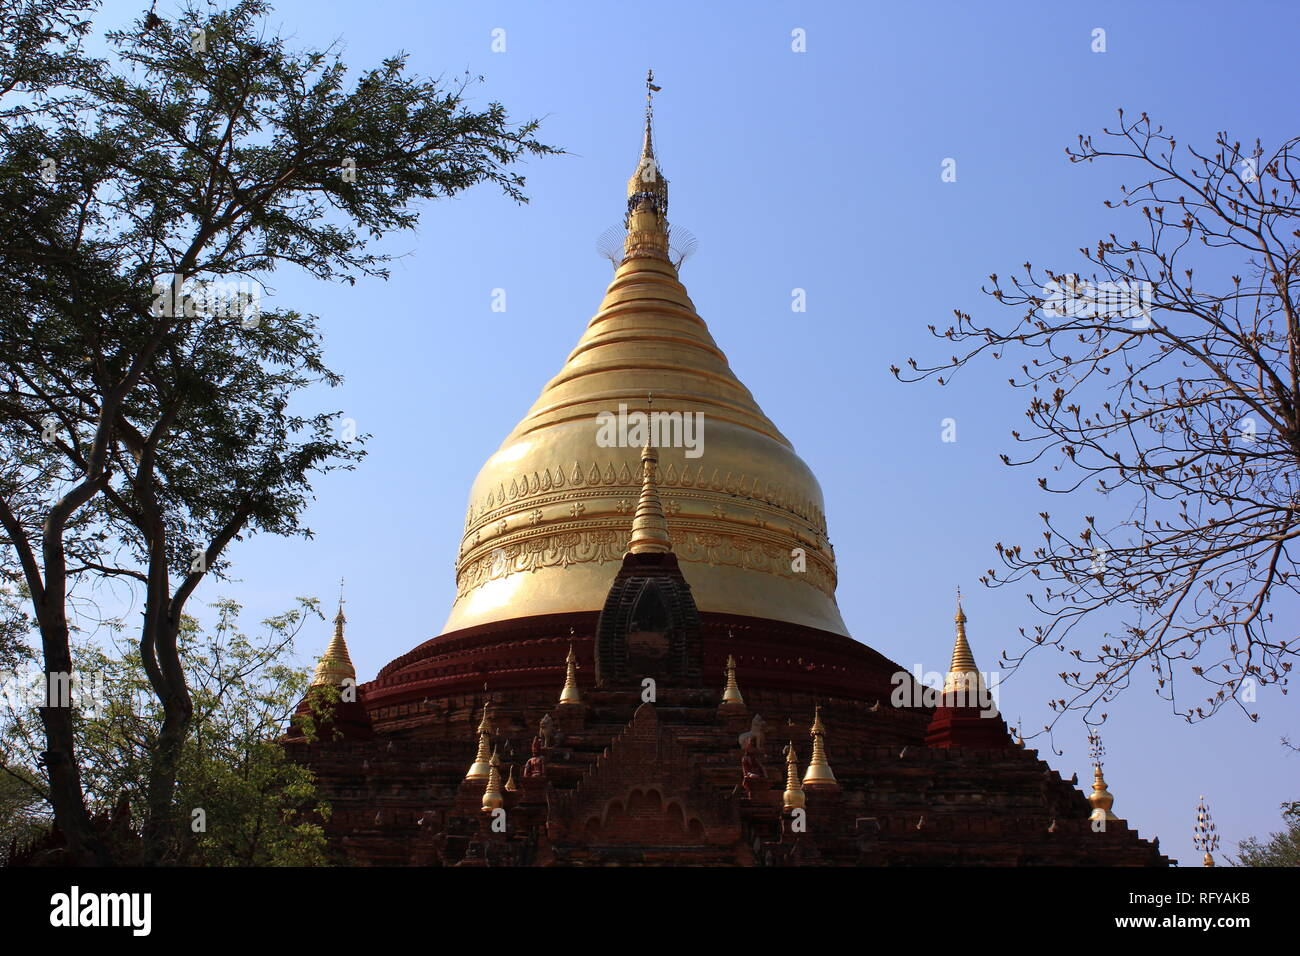 Temple landscape of dry Bagan in Myanmar with green bushes - Stock Image